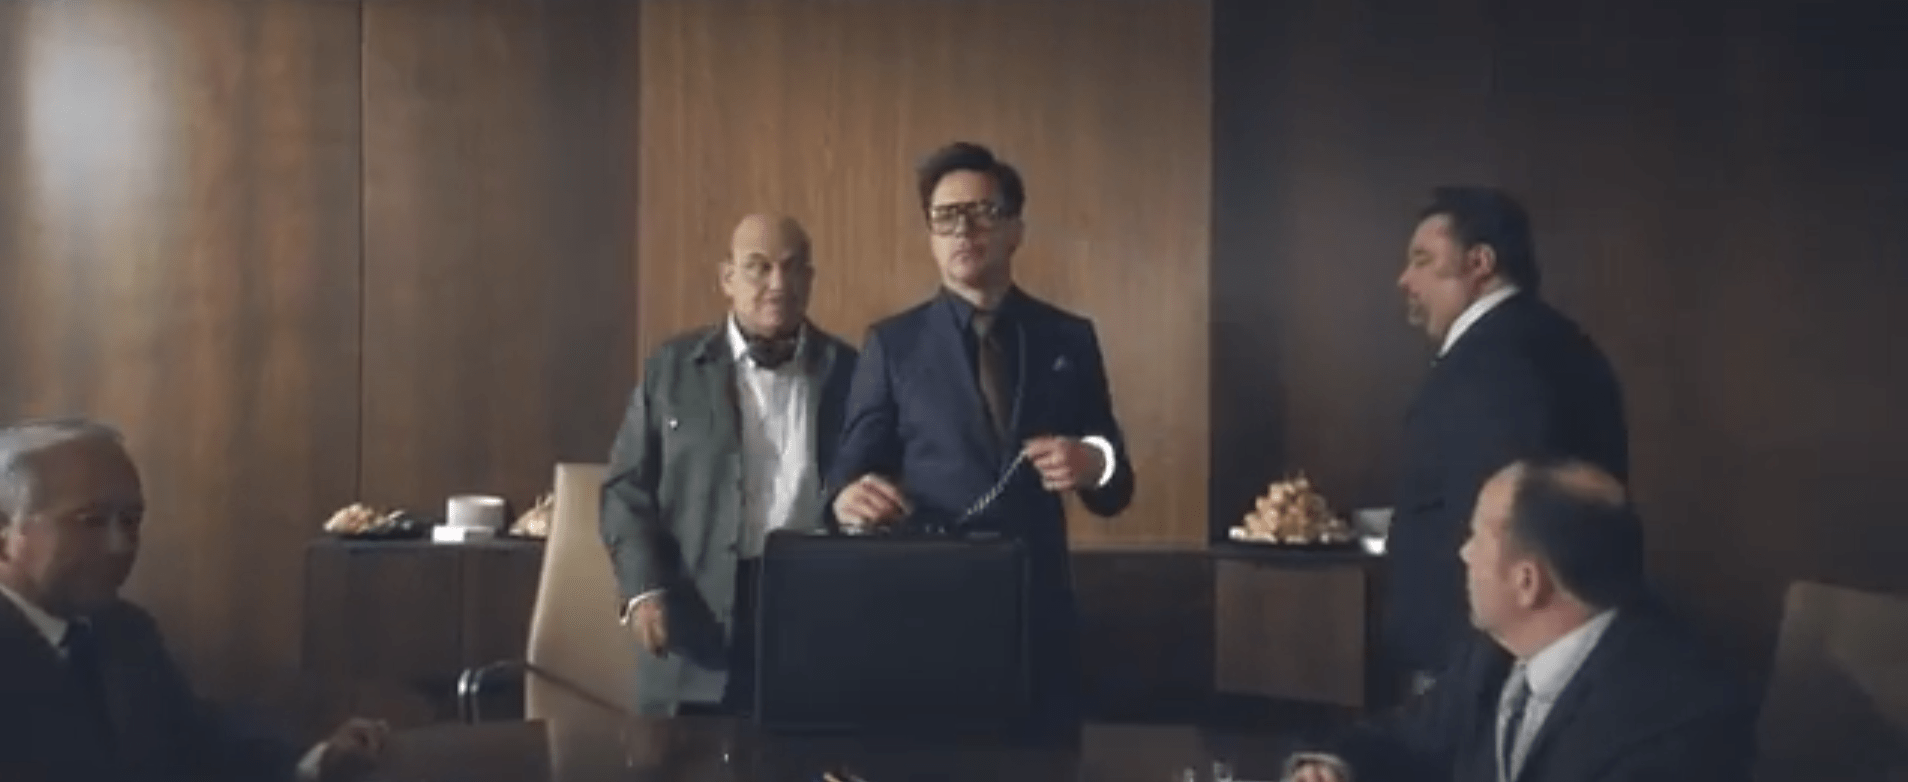 HTC poursuit sa campagne de teasing avec Robert Downey Jr.